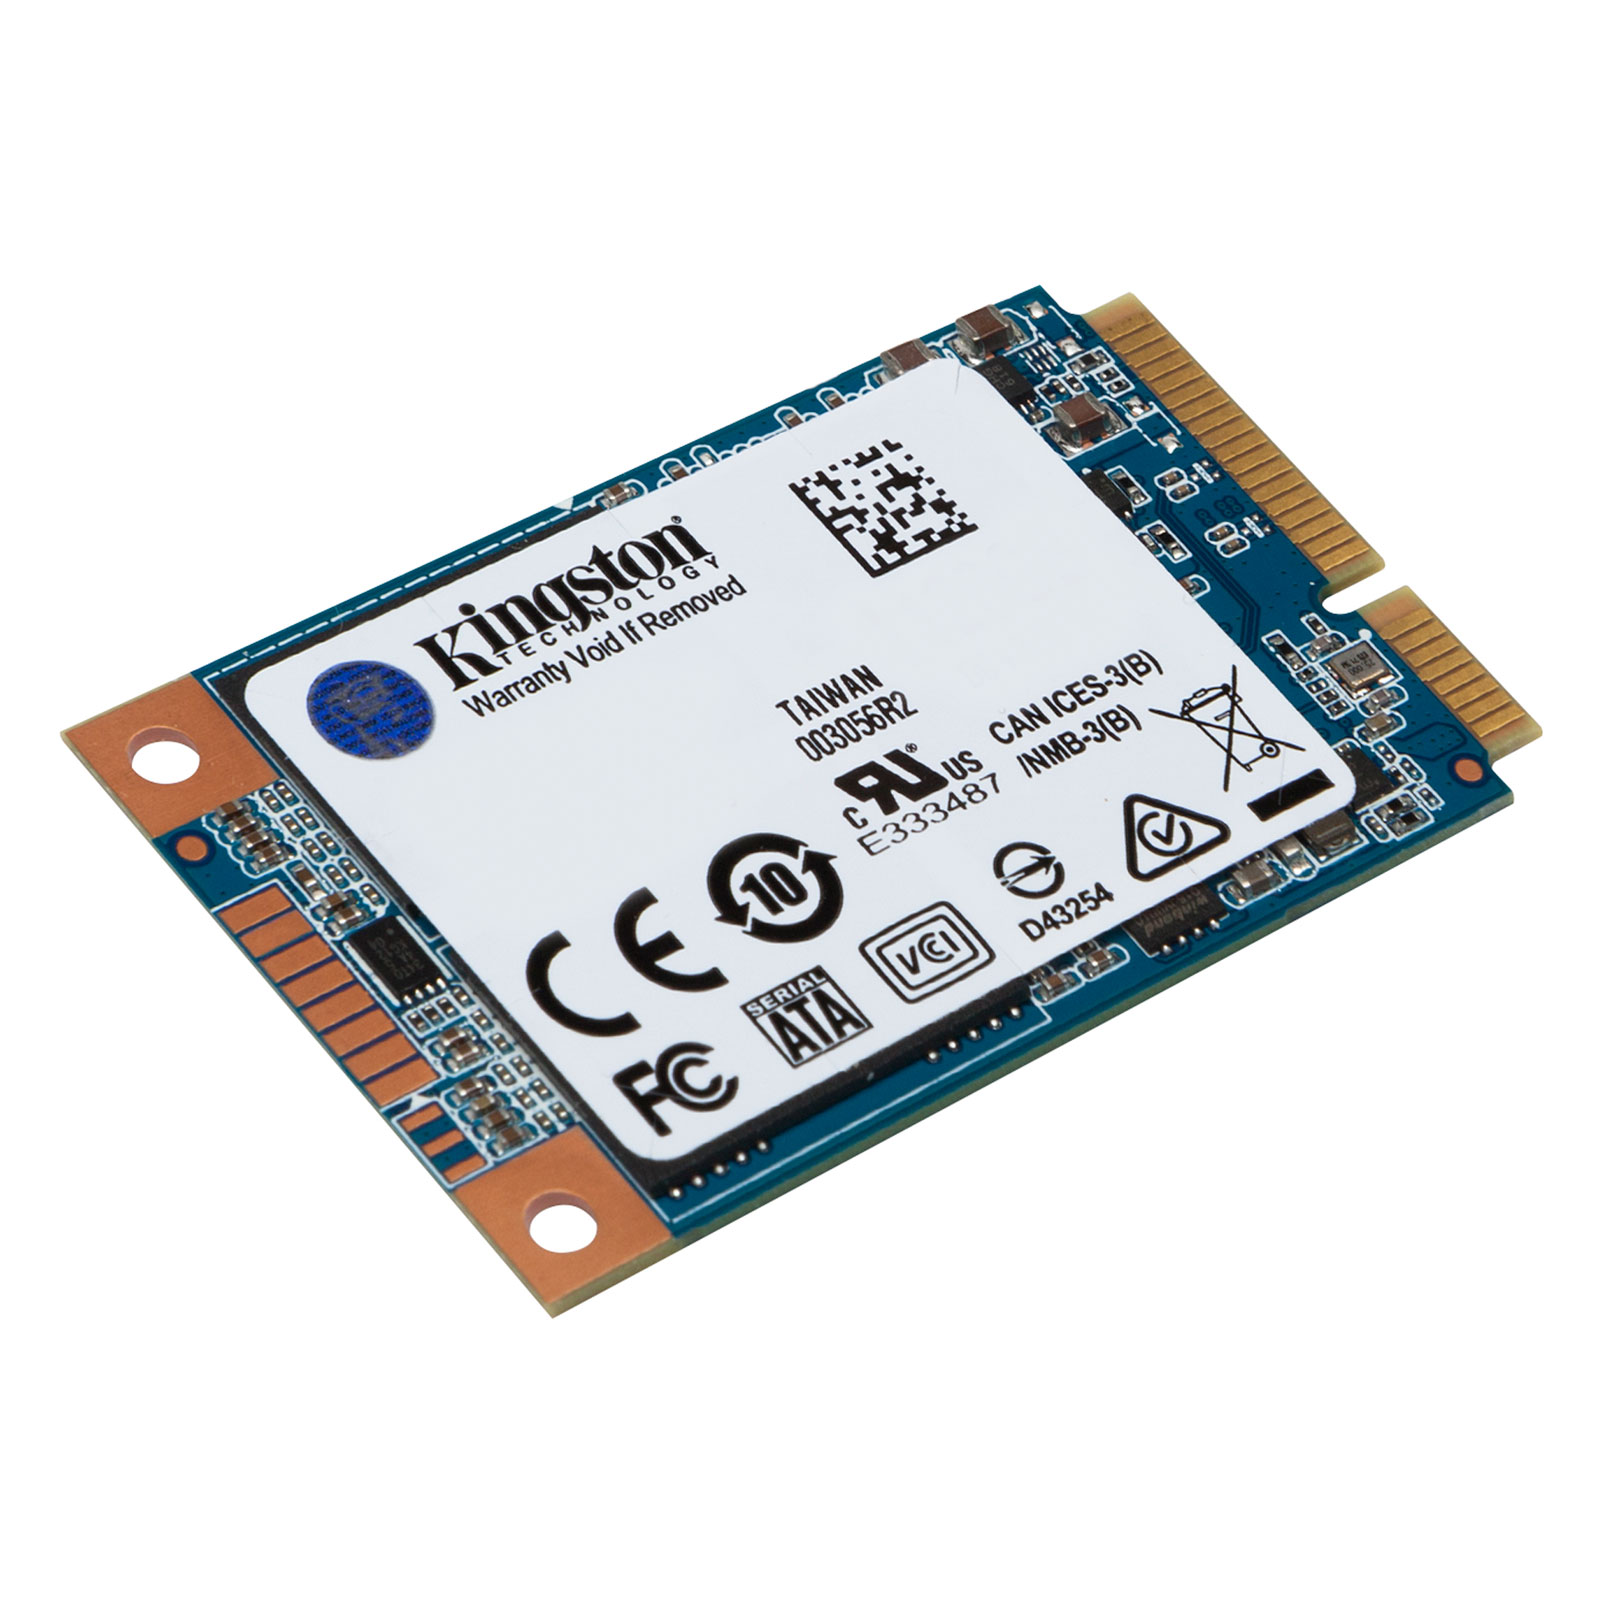 Kingston SUV500MS/240G mSATA  - Disque SSD Kingston - Cybertek.fr - 0